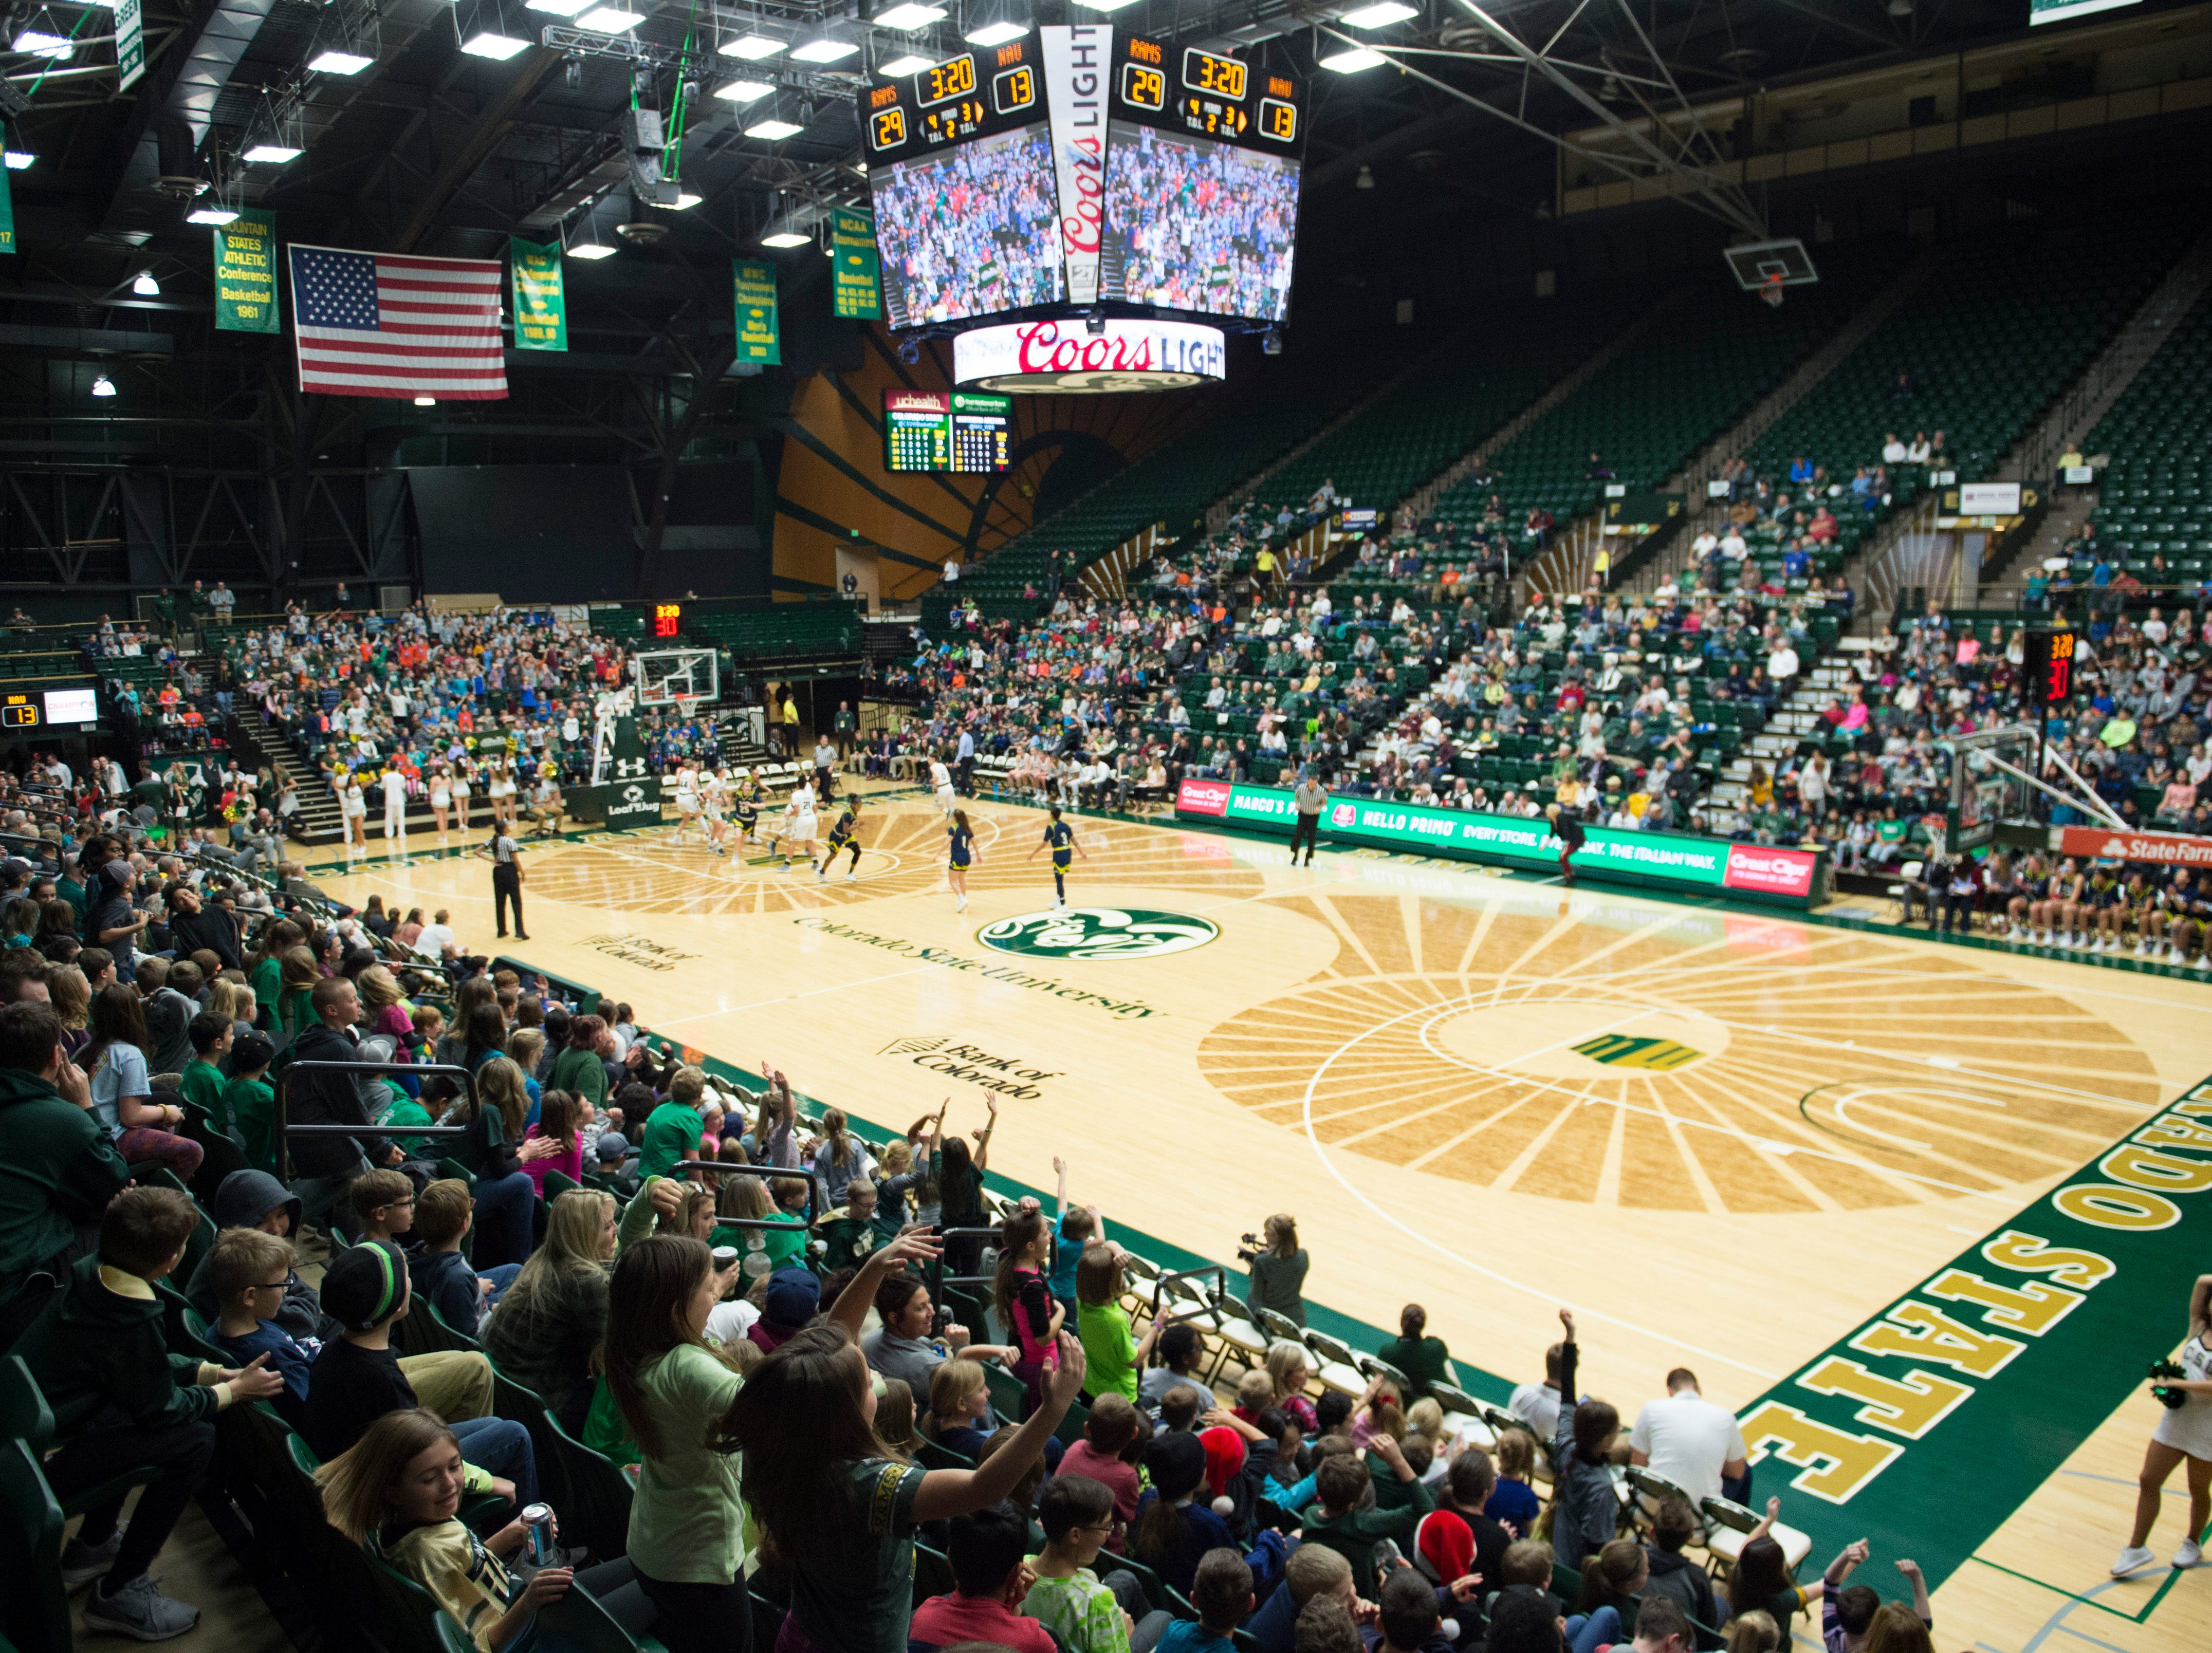 About 1,600 area elementary school students cheer on the Rams as they take on Northern Arizona at Moby Arena on Wednesday, December 5, 2018.